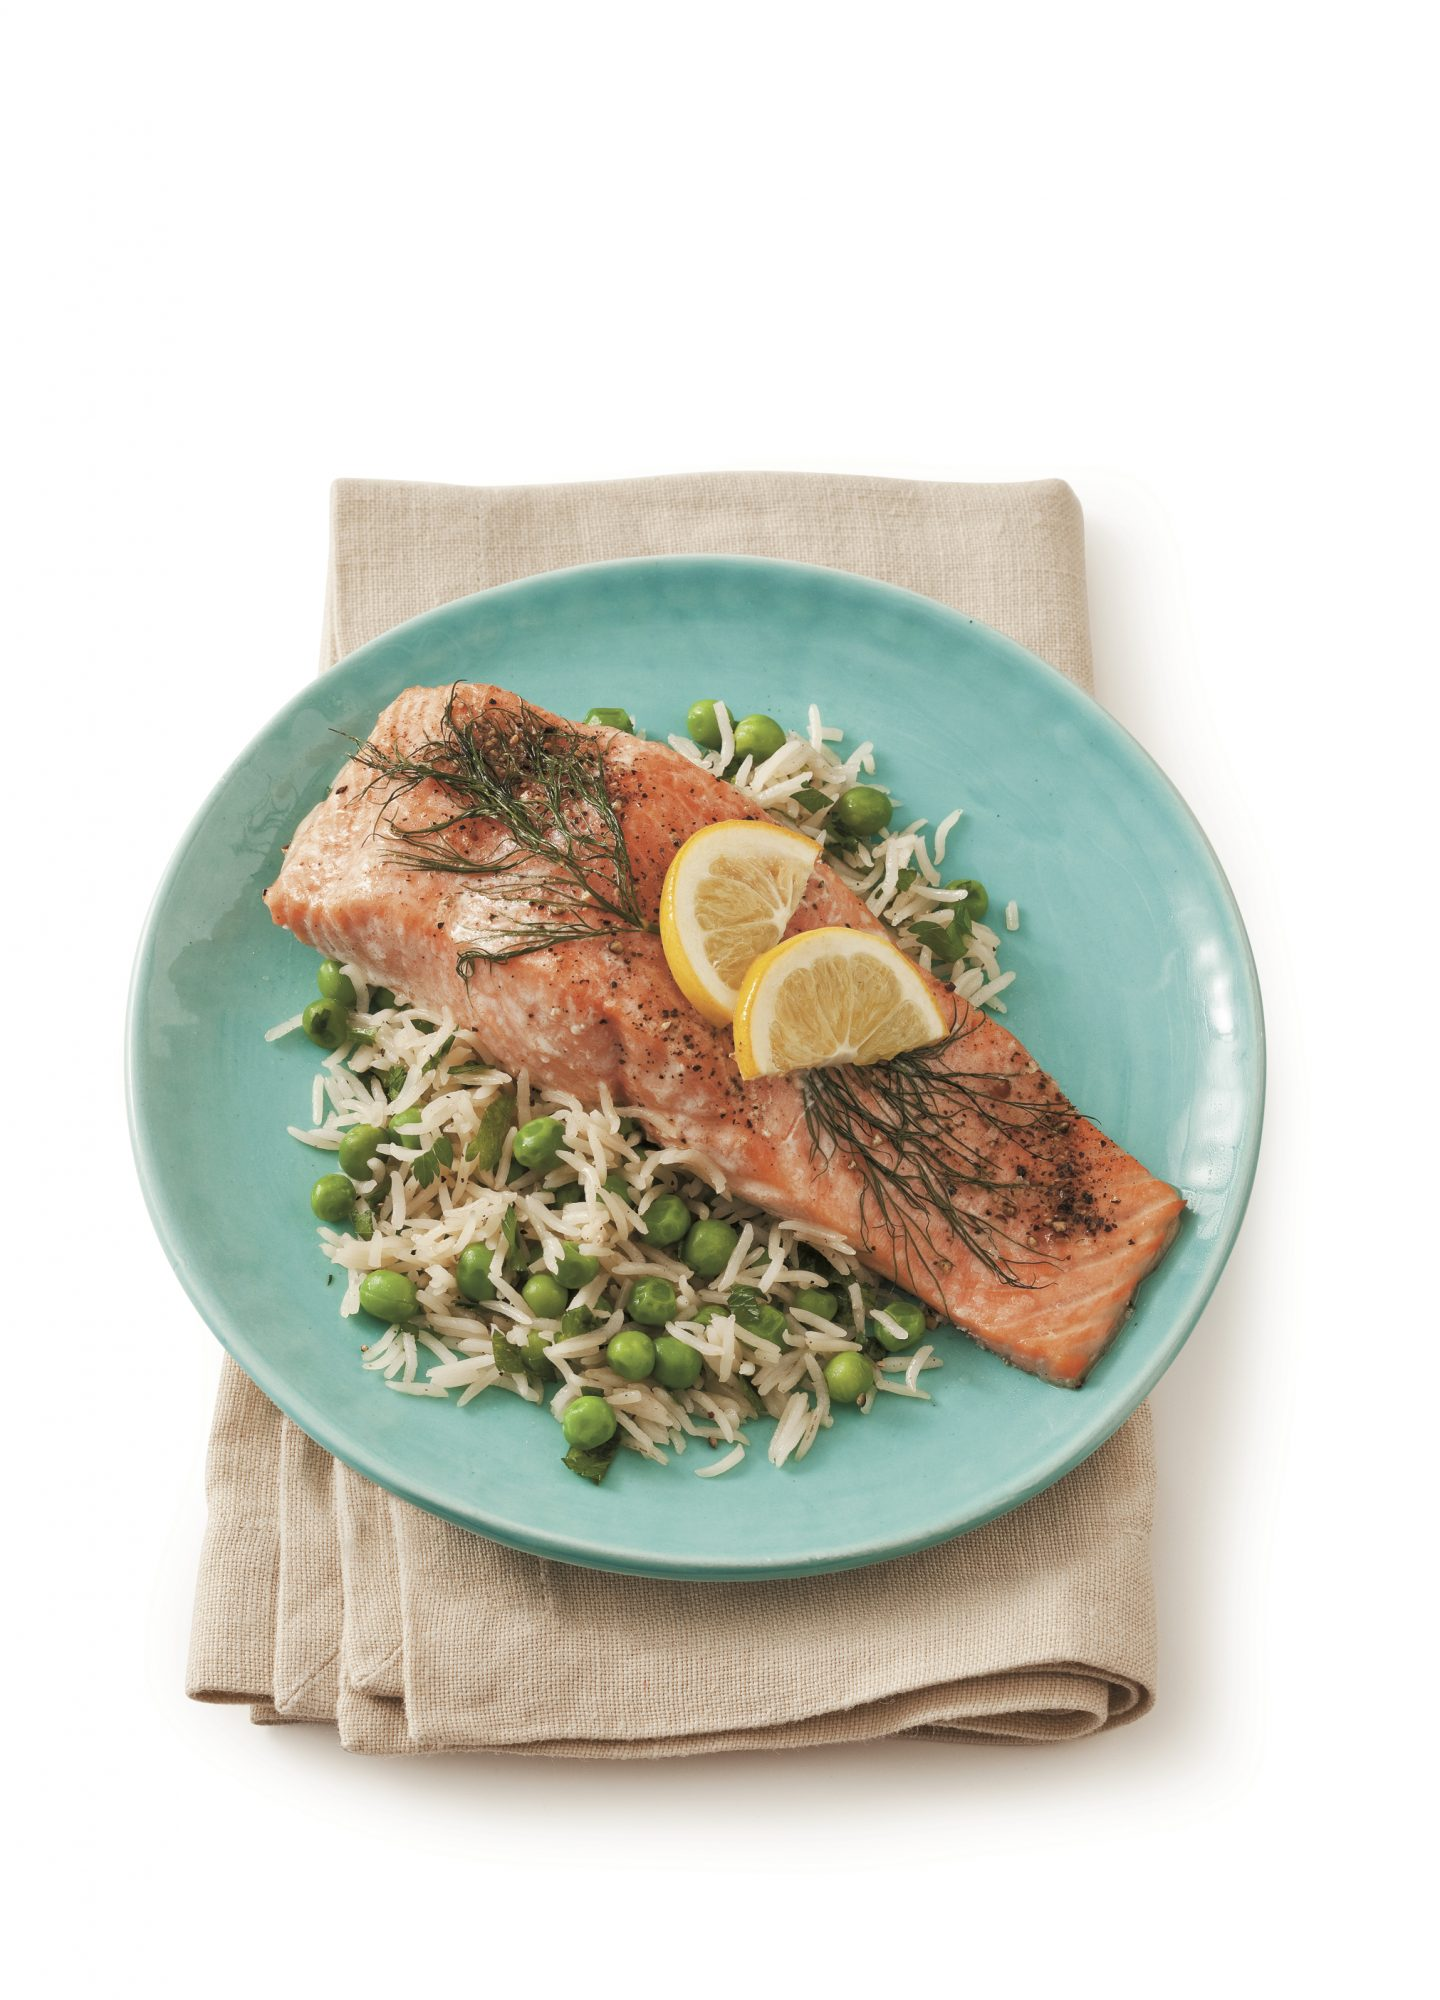 Best Lemon Recipes Roasted Salmon with Lemon and Dill